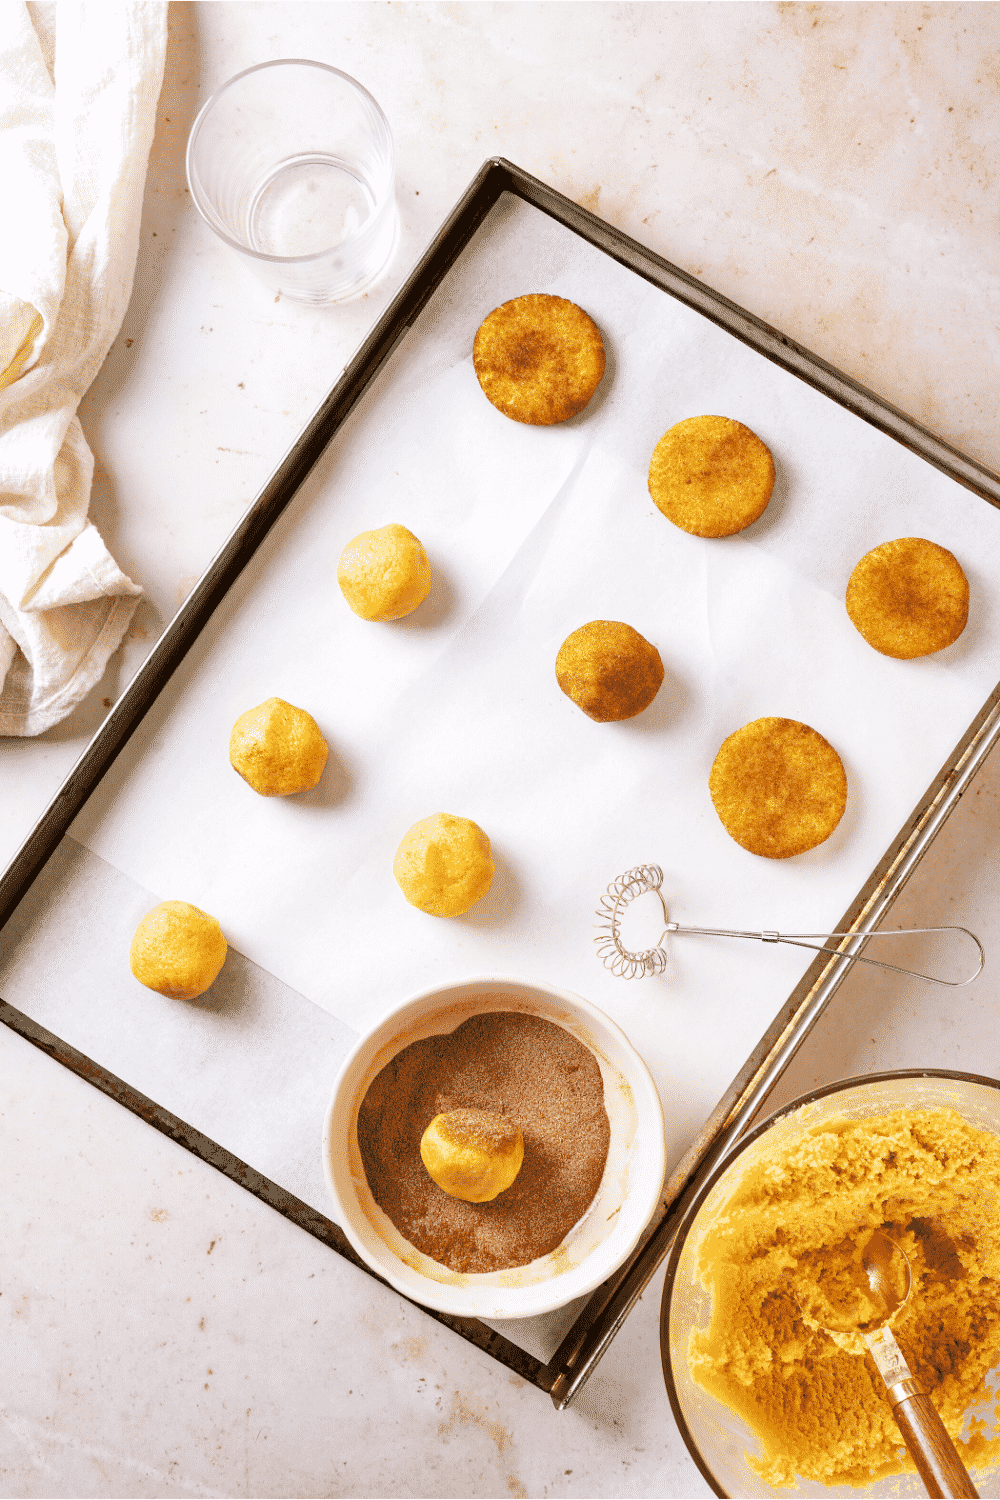 A baking sheet lined with parchment paper with with rows of snickerdoodle cookies on it. A few snickerdoodle cookies are rolled in cinnamon sugar coating and flattened and a few are still a dough ball. There is a bowl of cinnamon sugar on the parchment paper with one cookie in it.